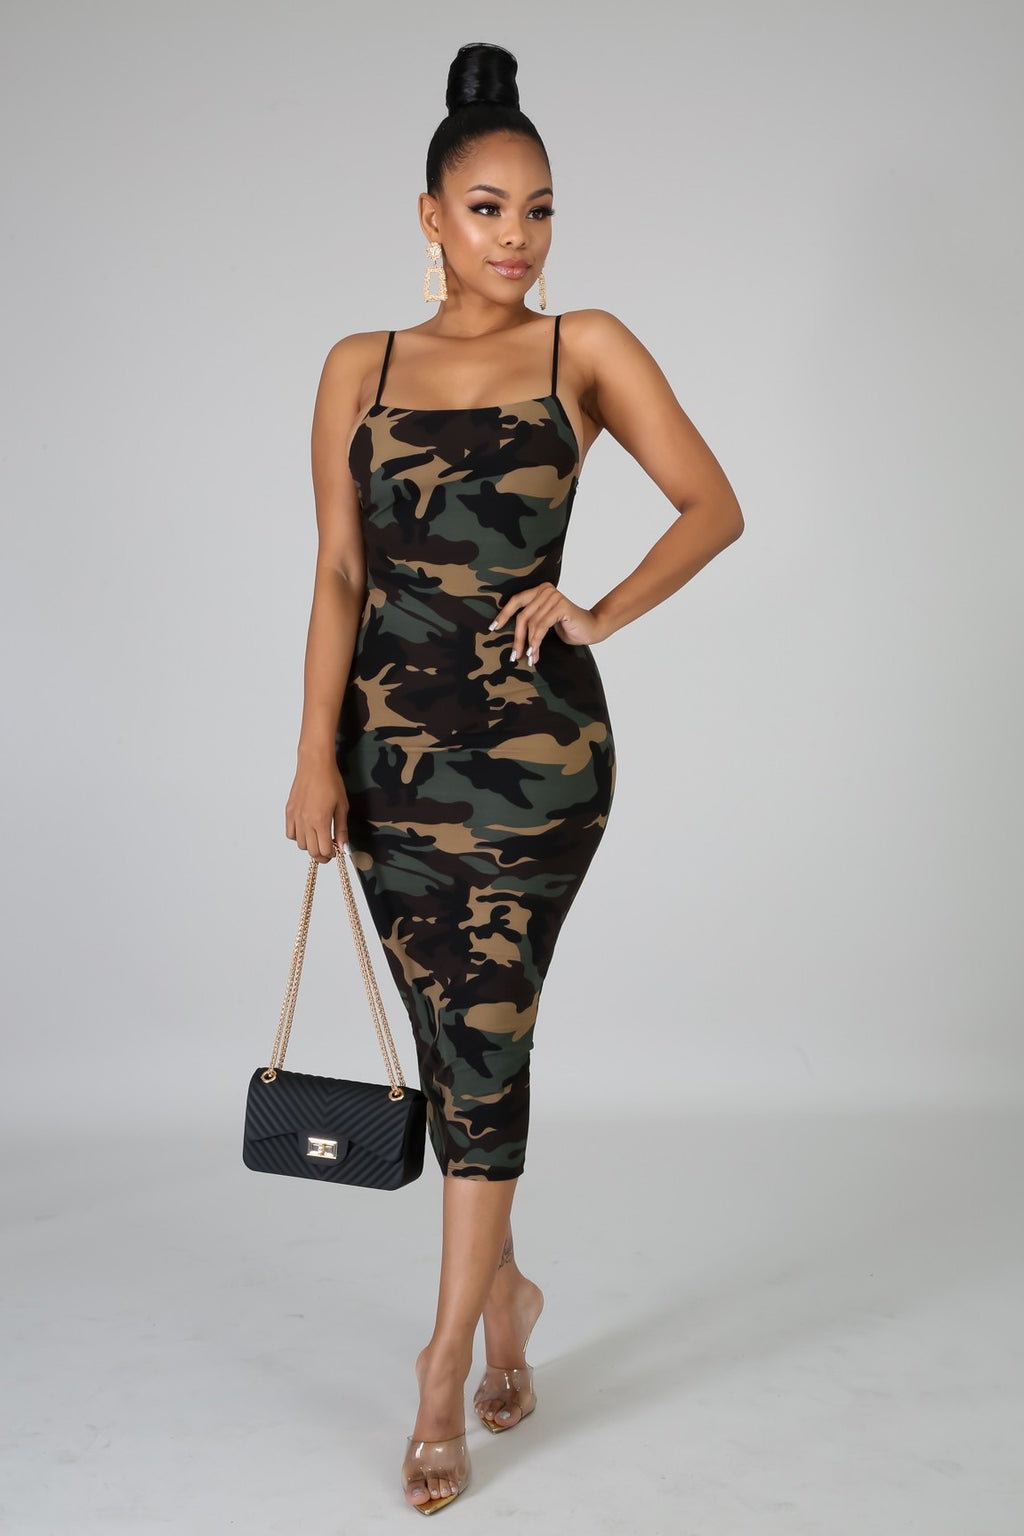 Ready for War Bodycon Spaghetti Strap Midi Dress with Camouflage Print